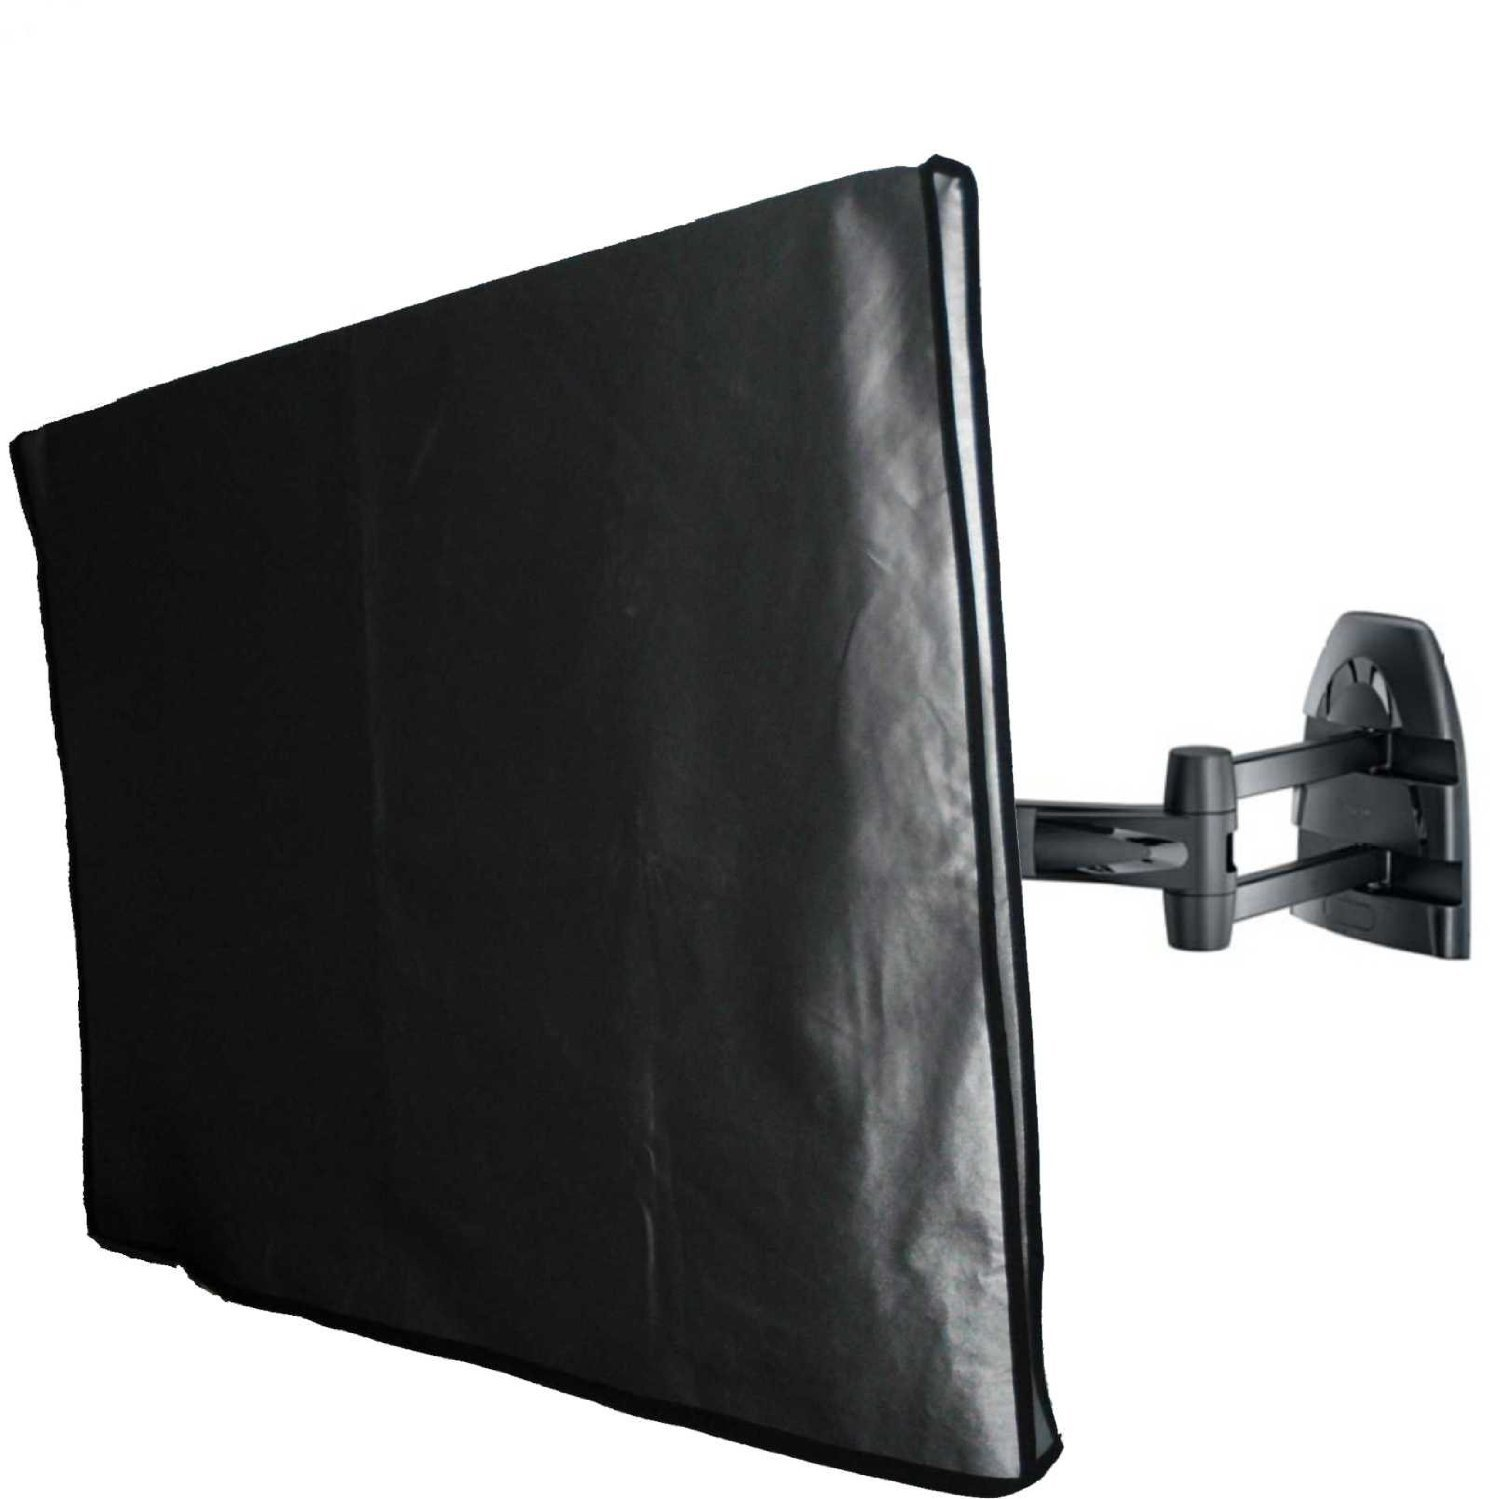 47'' Flat Panel TV Cover with pocket for Remote Vinyl Padded Dust Covers. Ideal for Outdoor Locations.